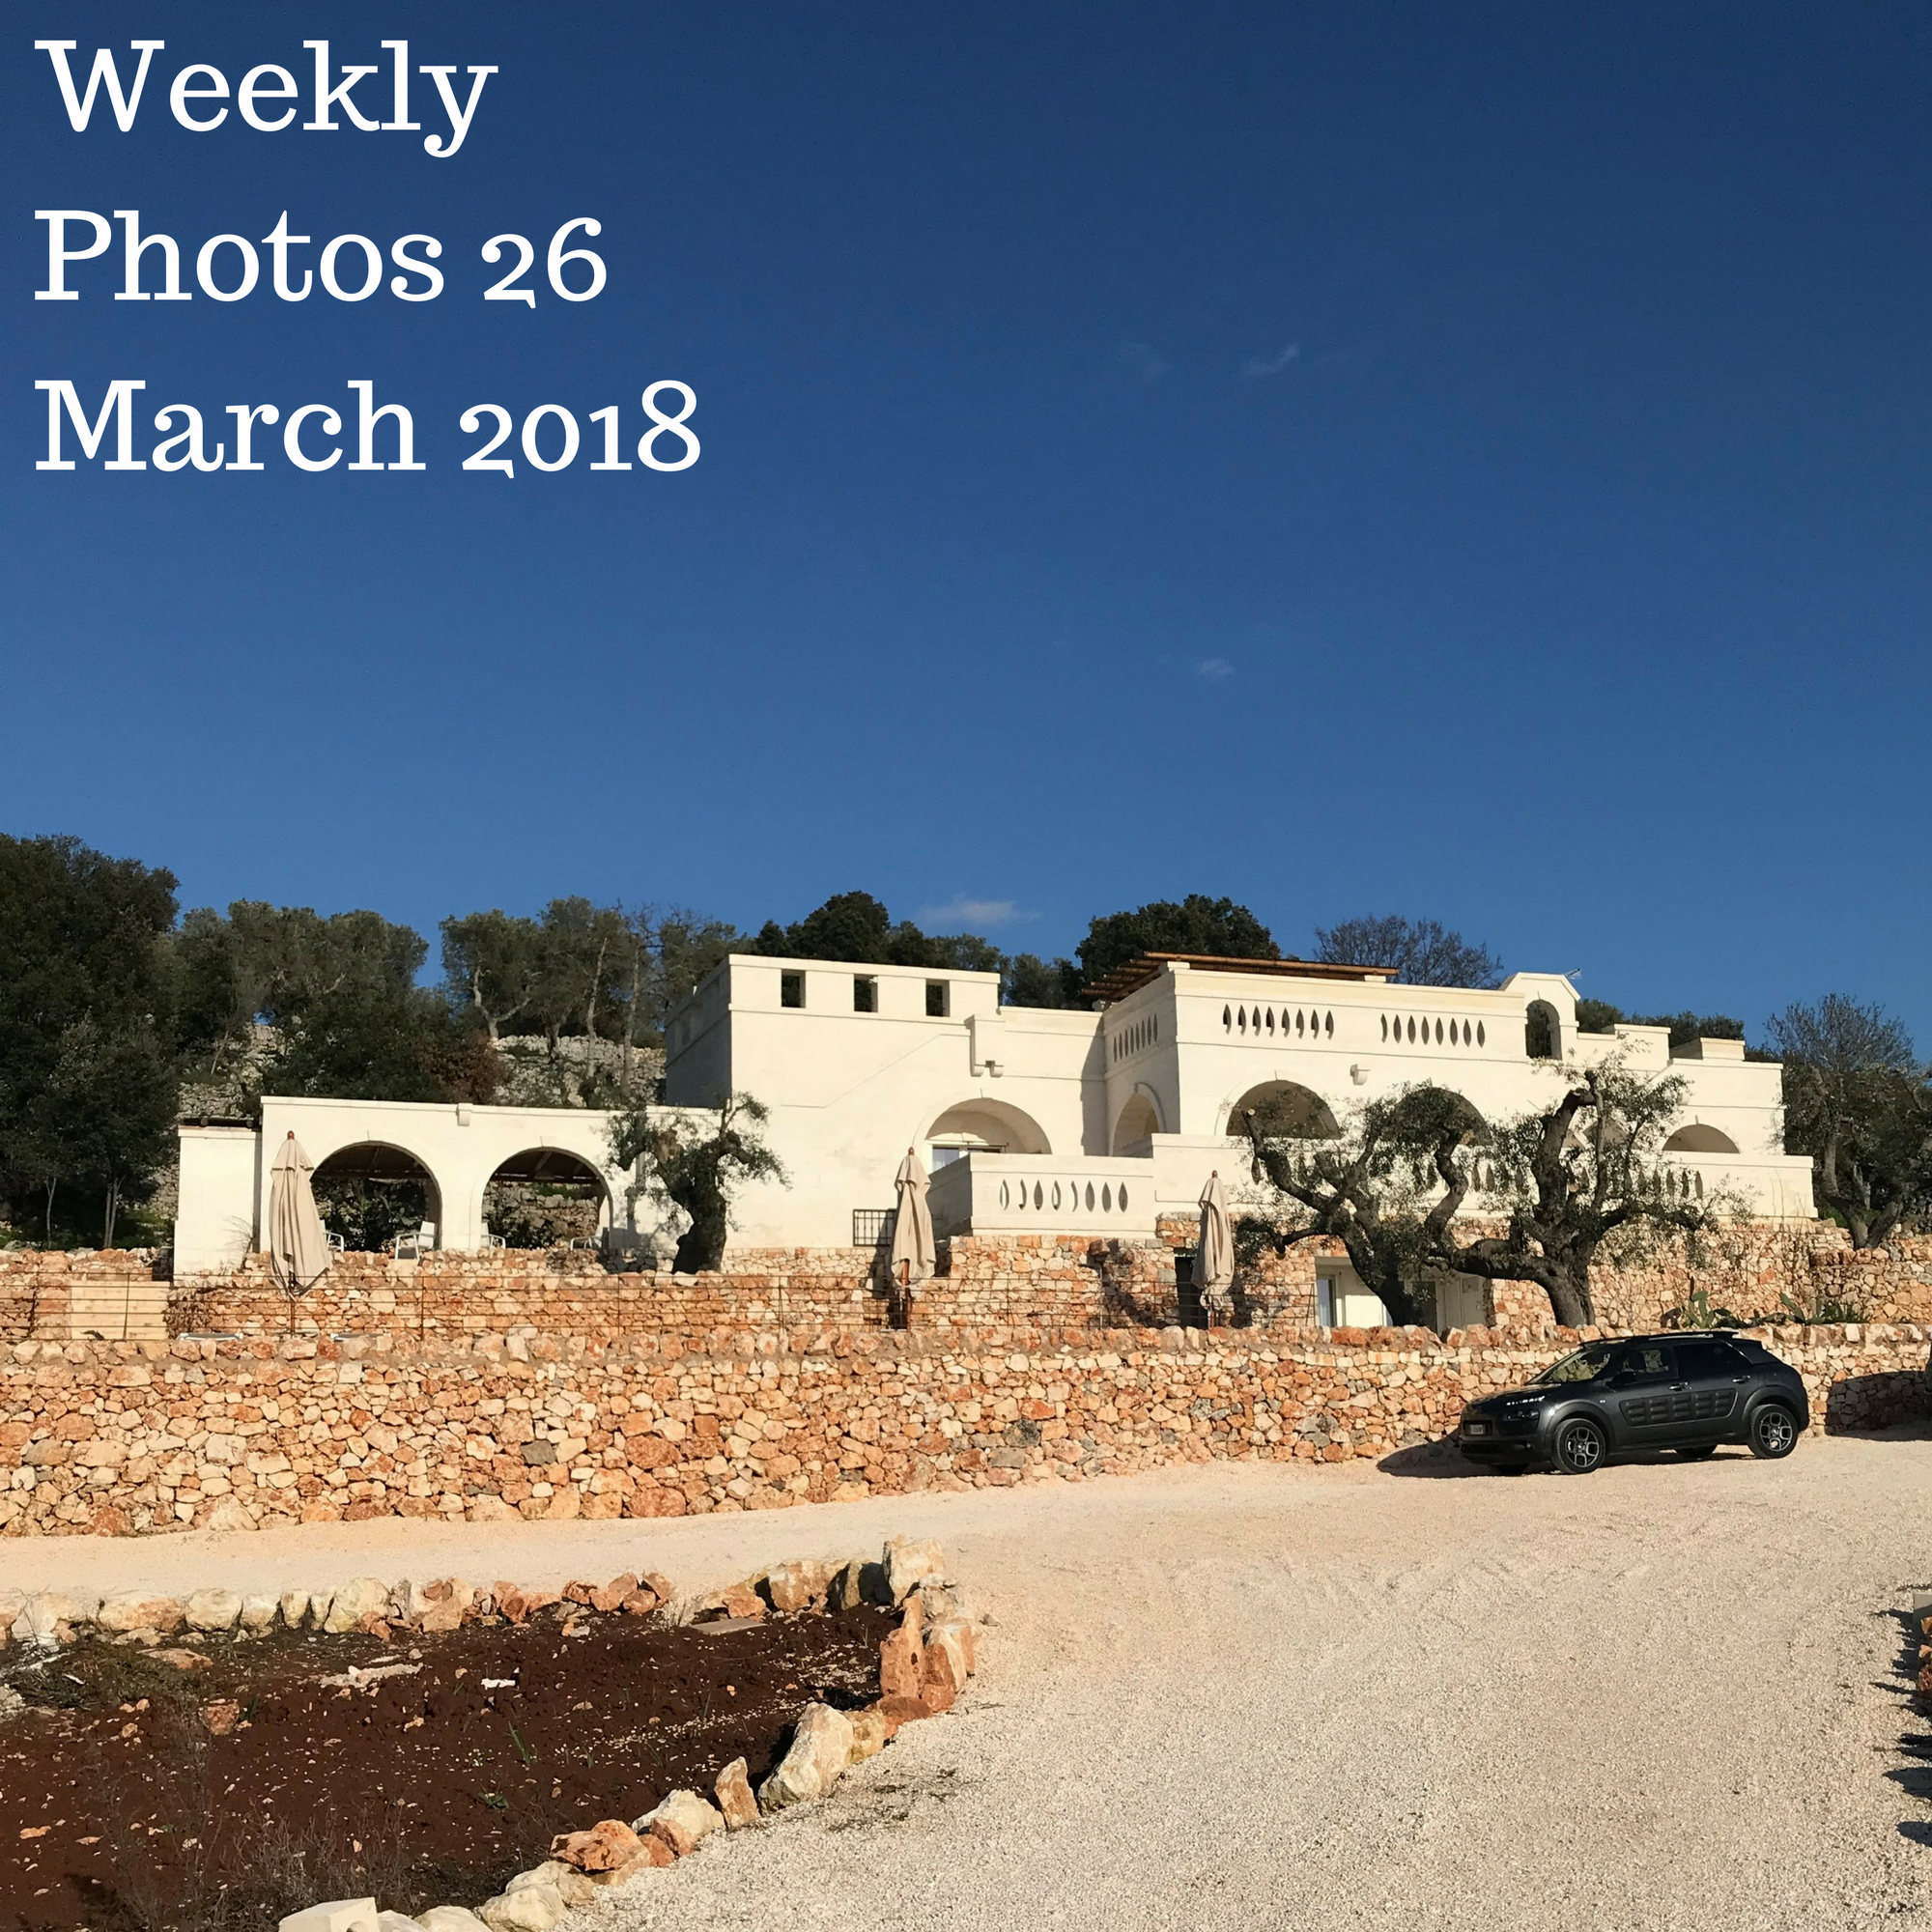 Weekly Photos 26 March 2018